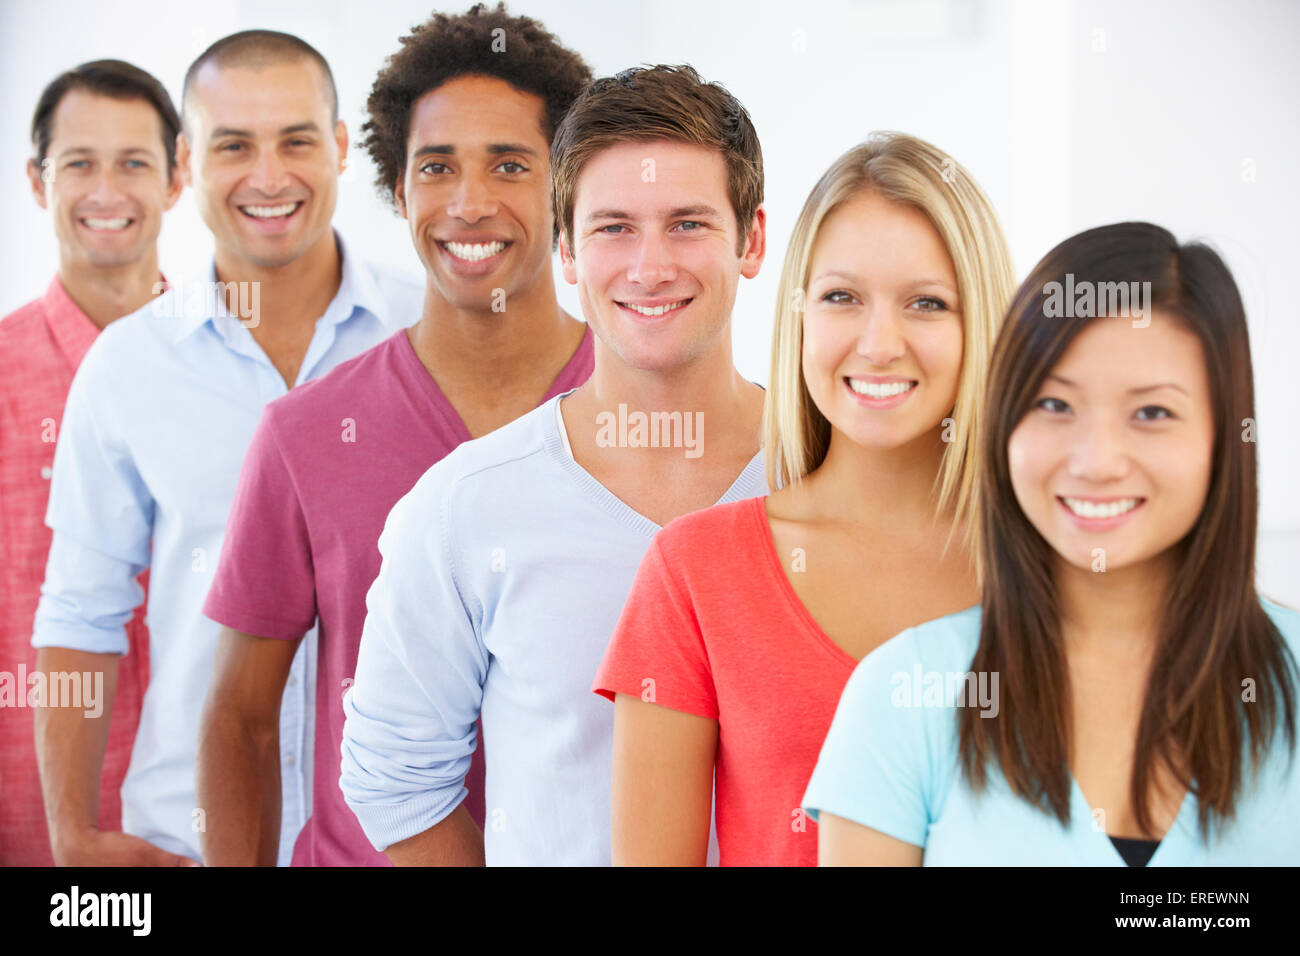 Line Of Happy And Positive Business People In Casual Dress - Stock Image